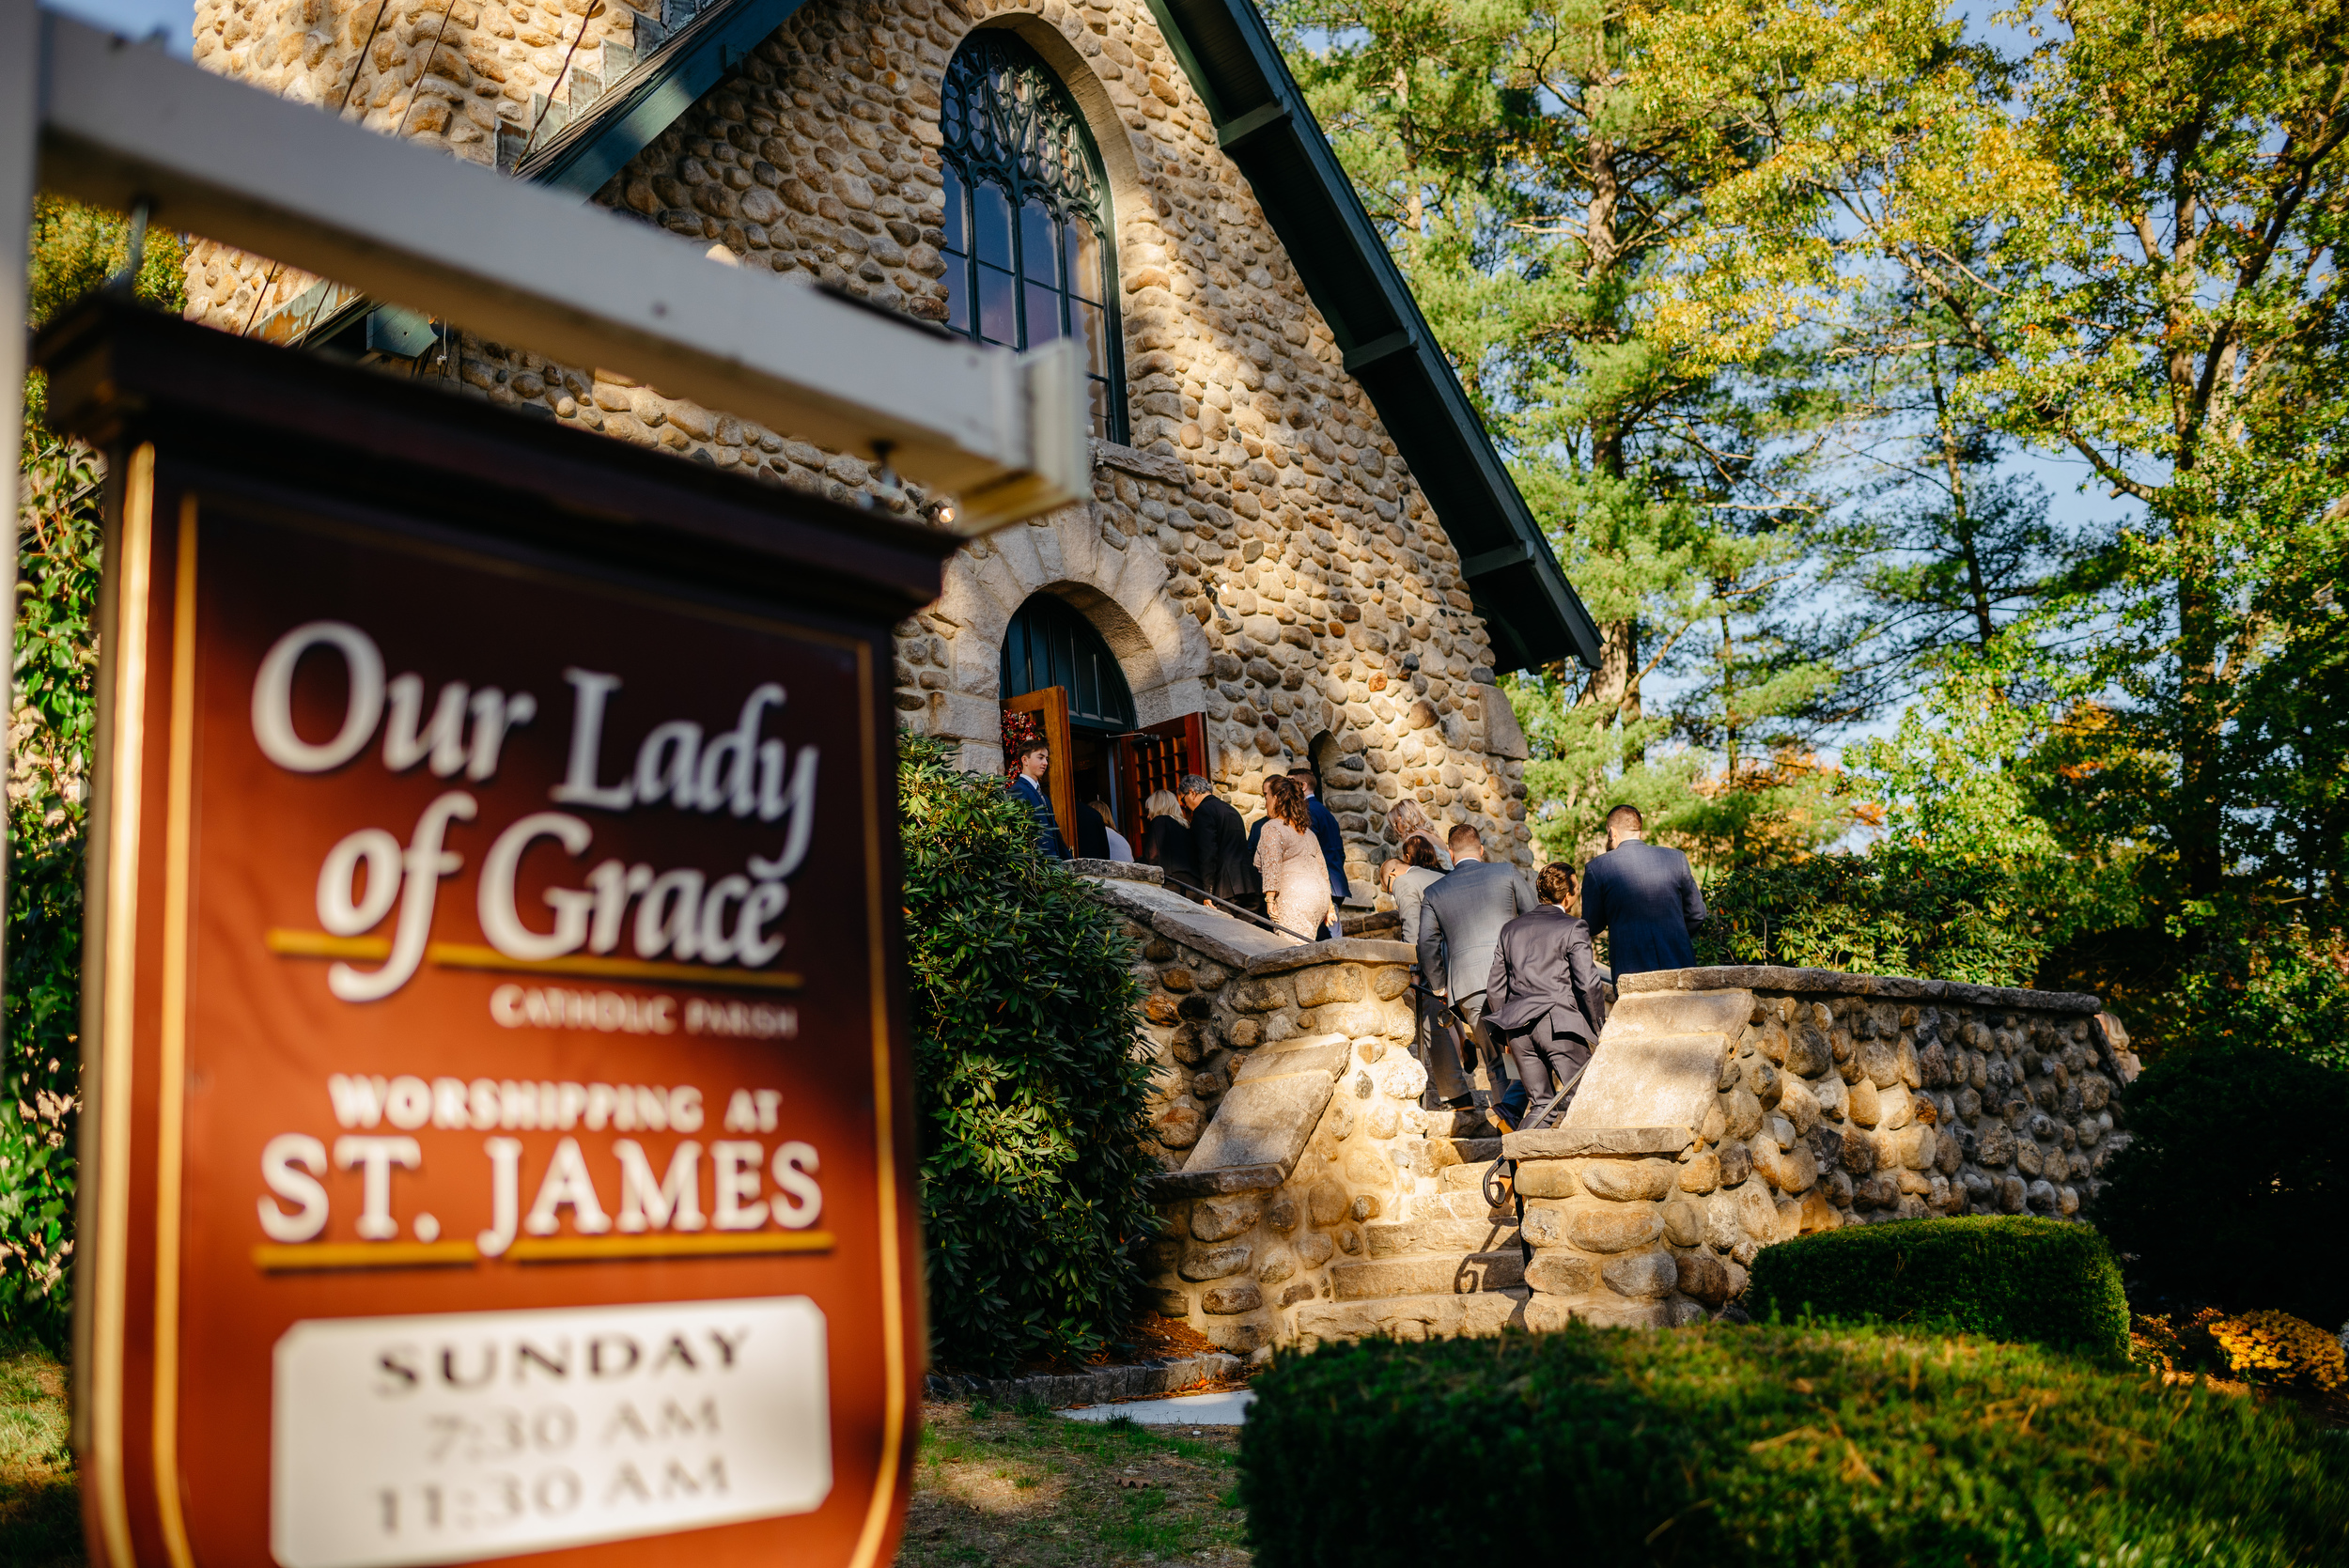 our lady of grace in groton st. james church wedding ceremony sign and guests walking in